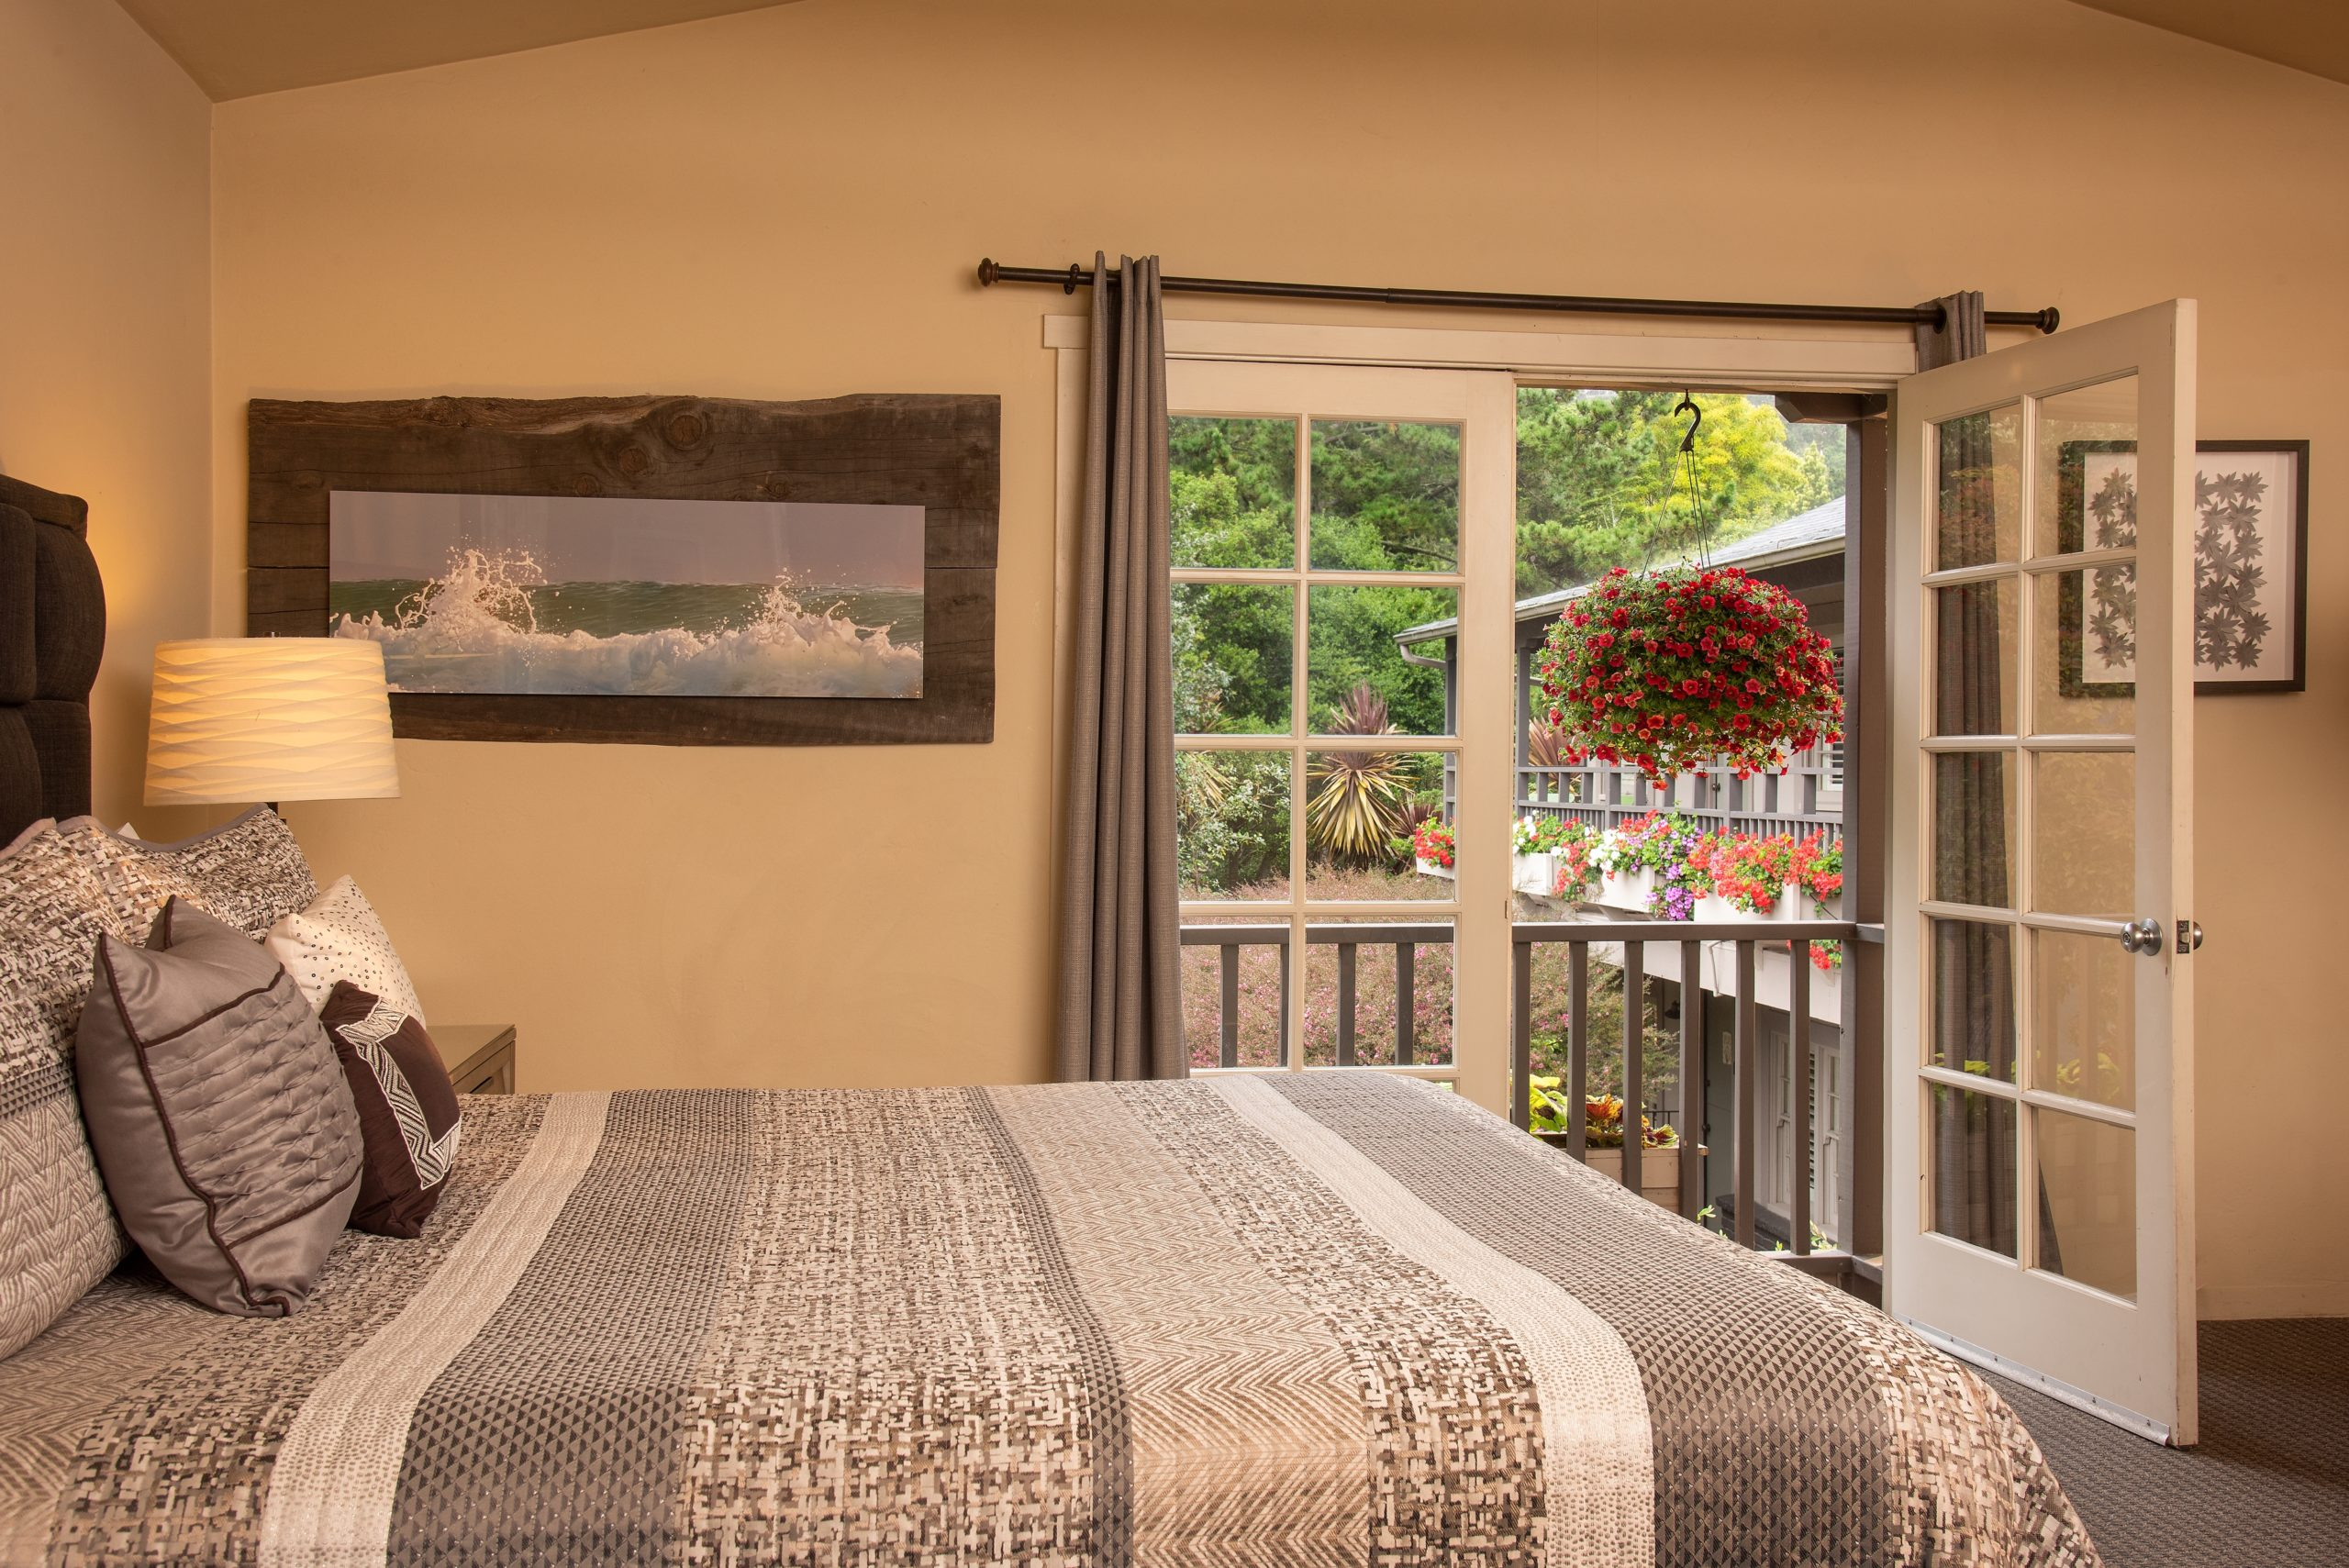 Luxury Rooms in our Carmel bed and breakfast